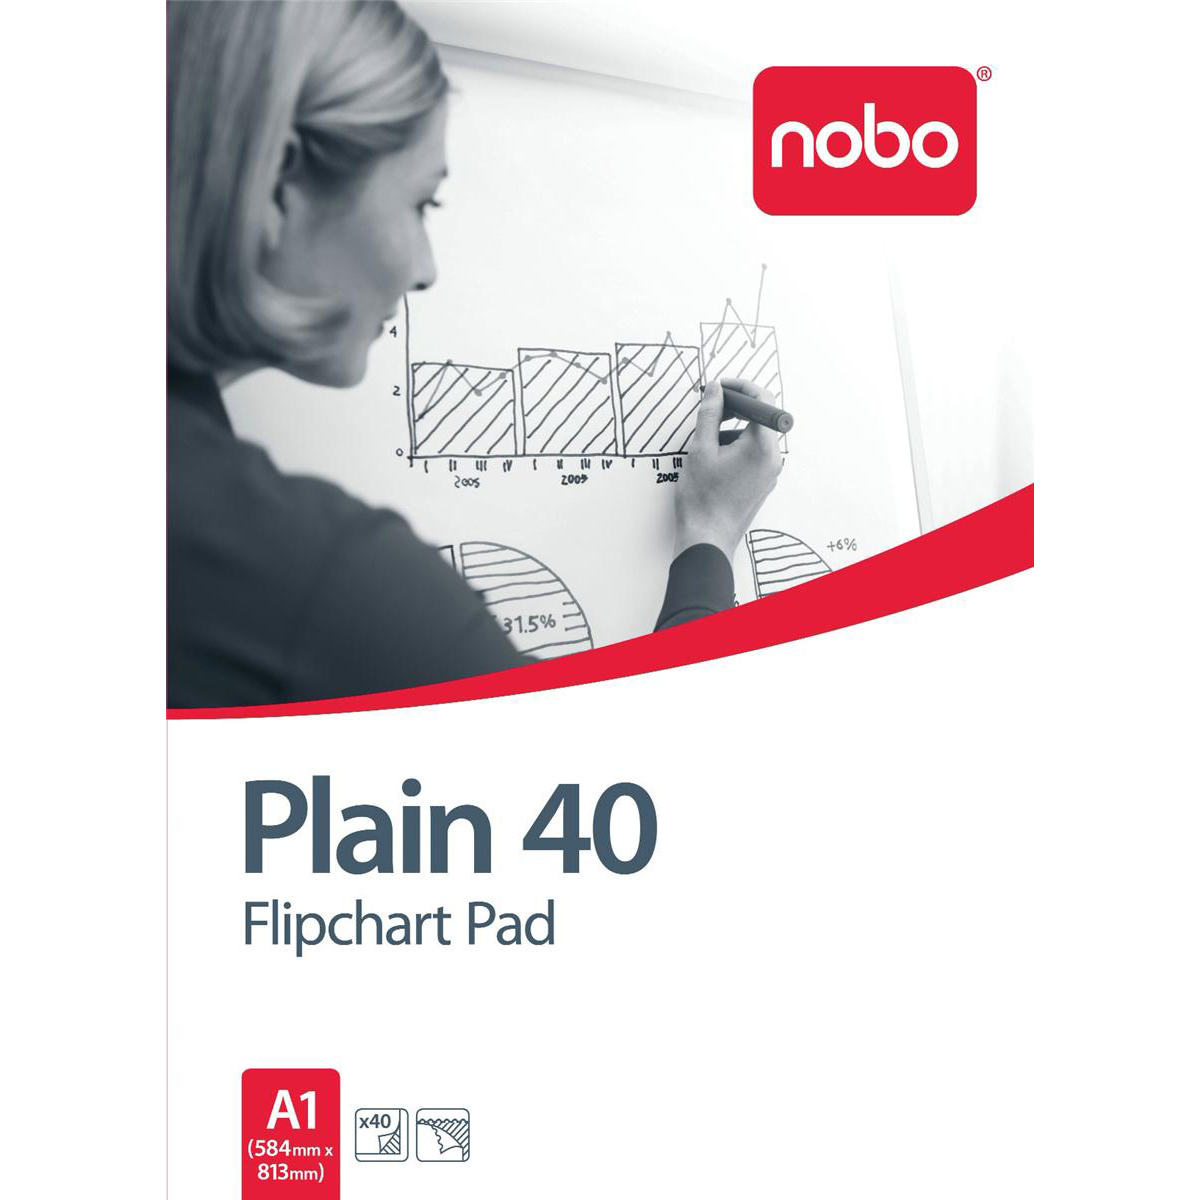 Nobo Flipchart Pad Perforated 40 Sheets 70gsm A1 Plain Ref 34631165 [Pack 5]